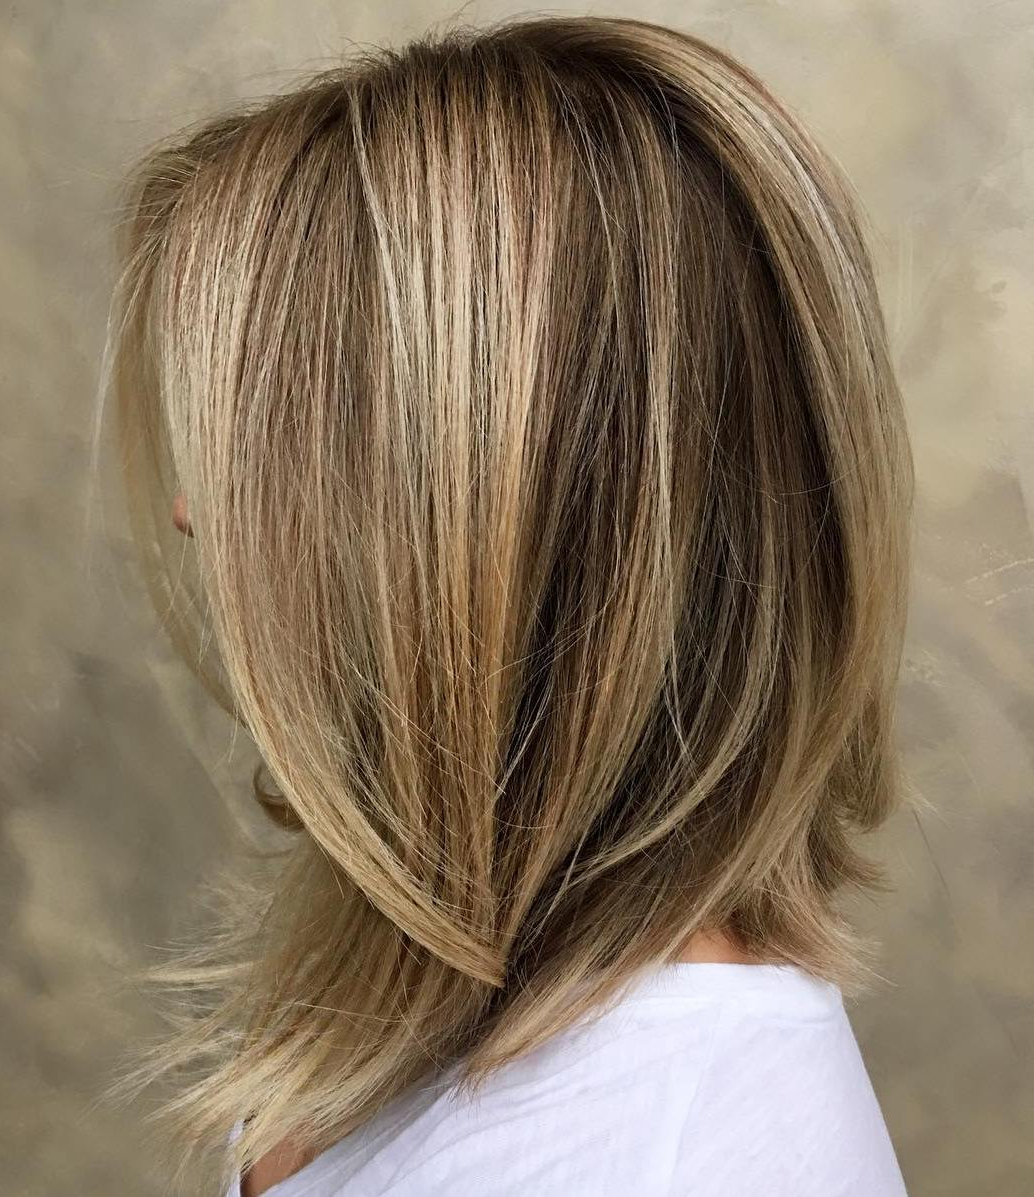 60 Inspiring Long Bob Hairstyles And Lob Haircuts 2018 In Choppy Golden Blonde Balayage Bob Hairstyles (Gallery 19 of 25)